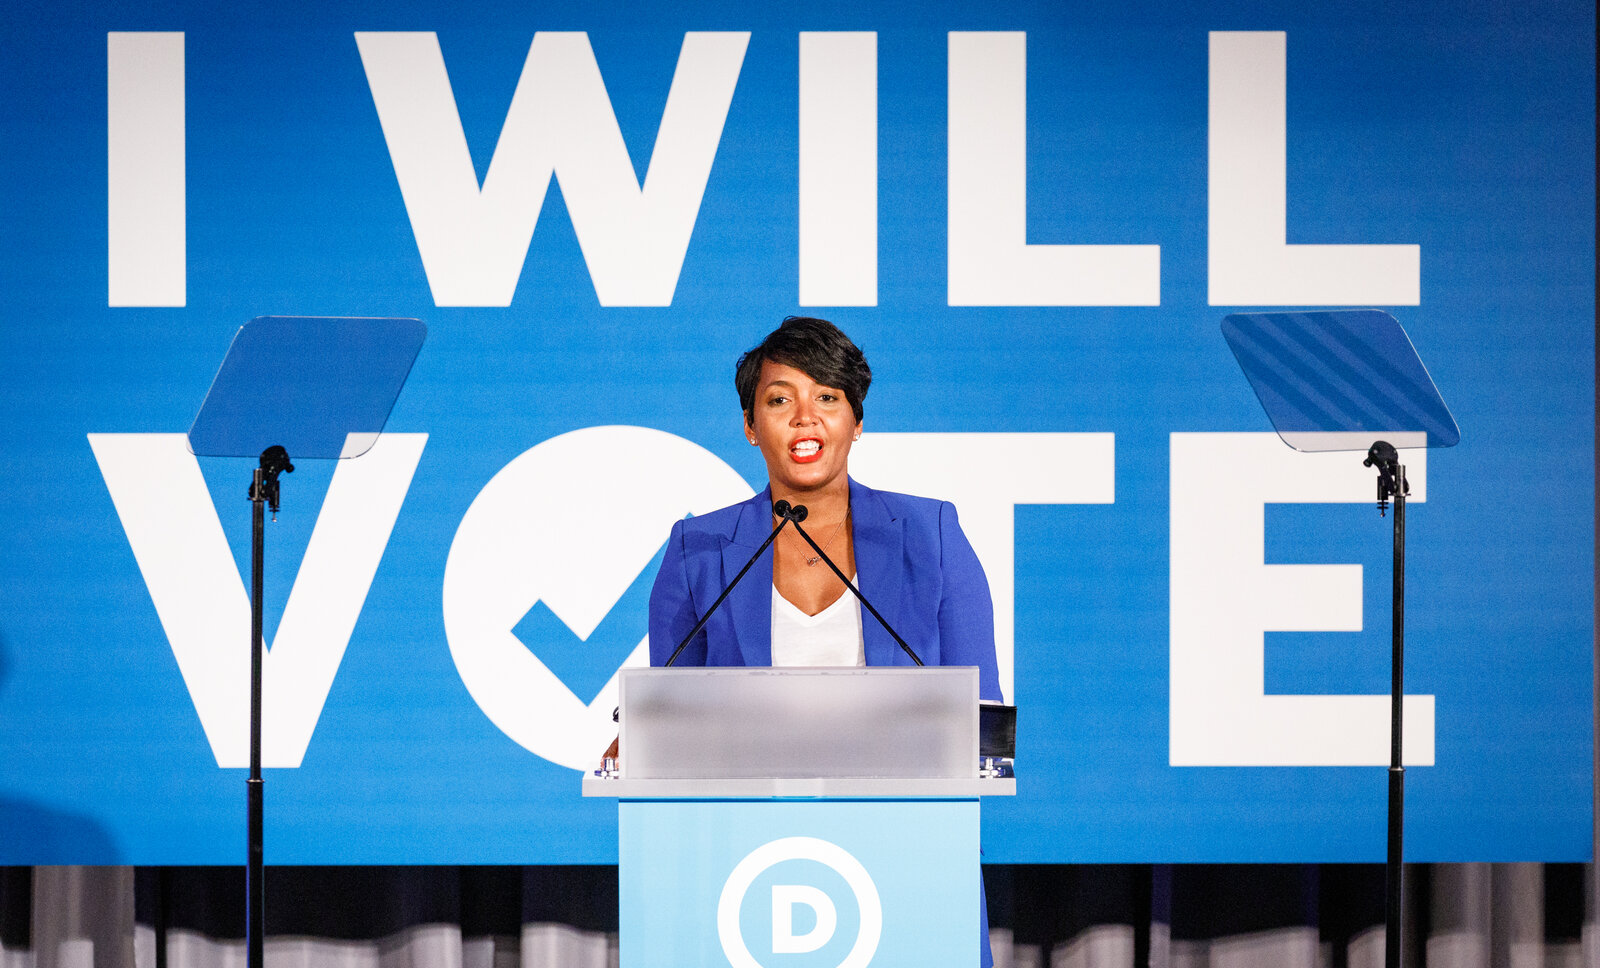 Atlanta Mayor Keisha Lance Bottoms addresses a Democratic National Committee event in June 2019 in Atlanta. The mayor is considered a contender for Joe Biden's vice presidential pick. Dustin Chambers/Getty Images